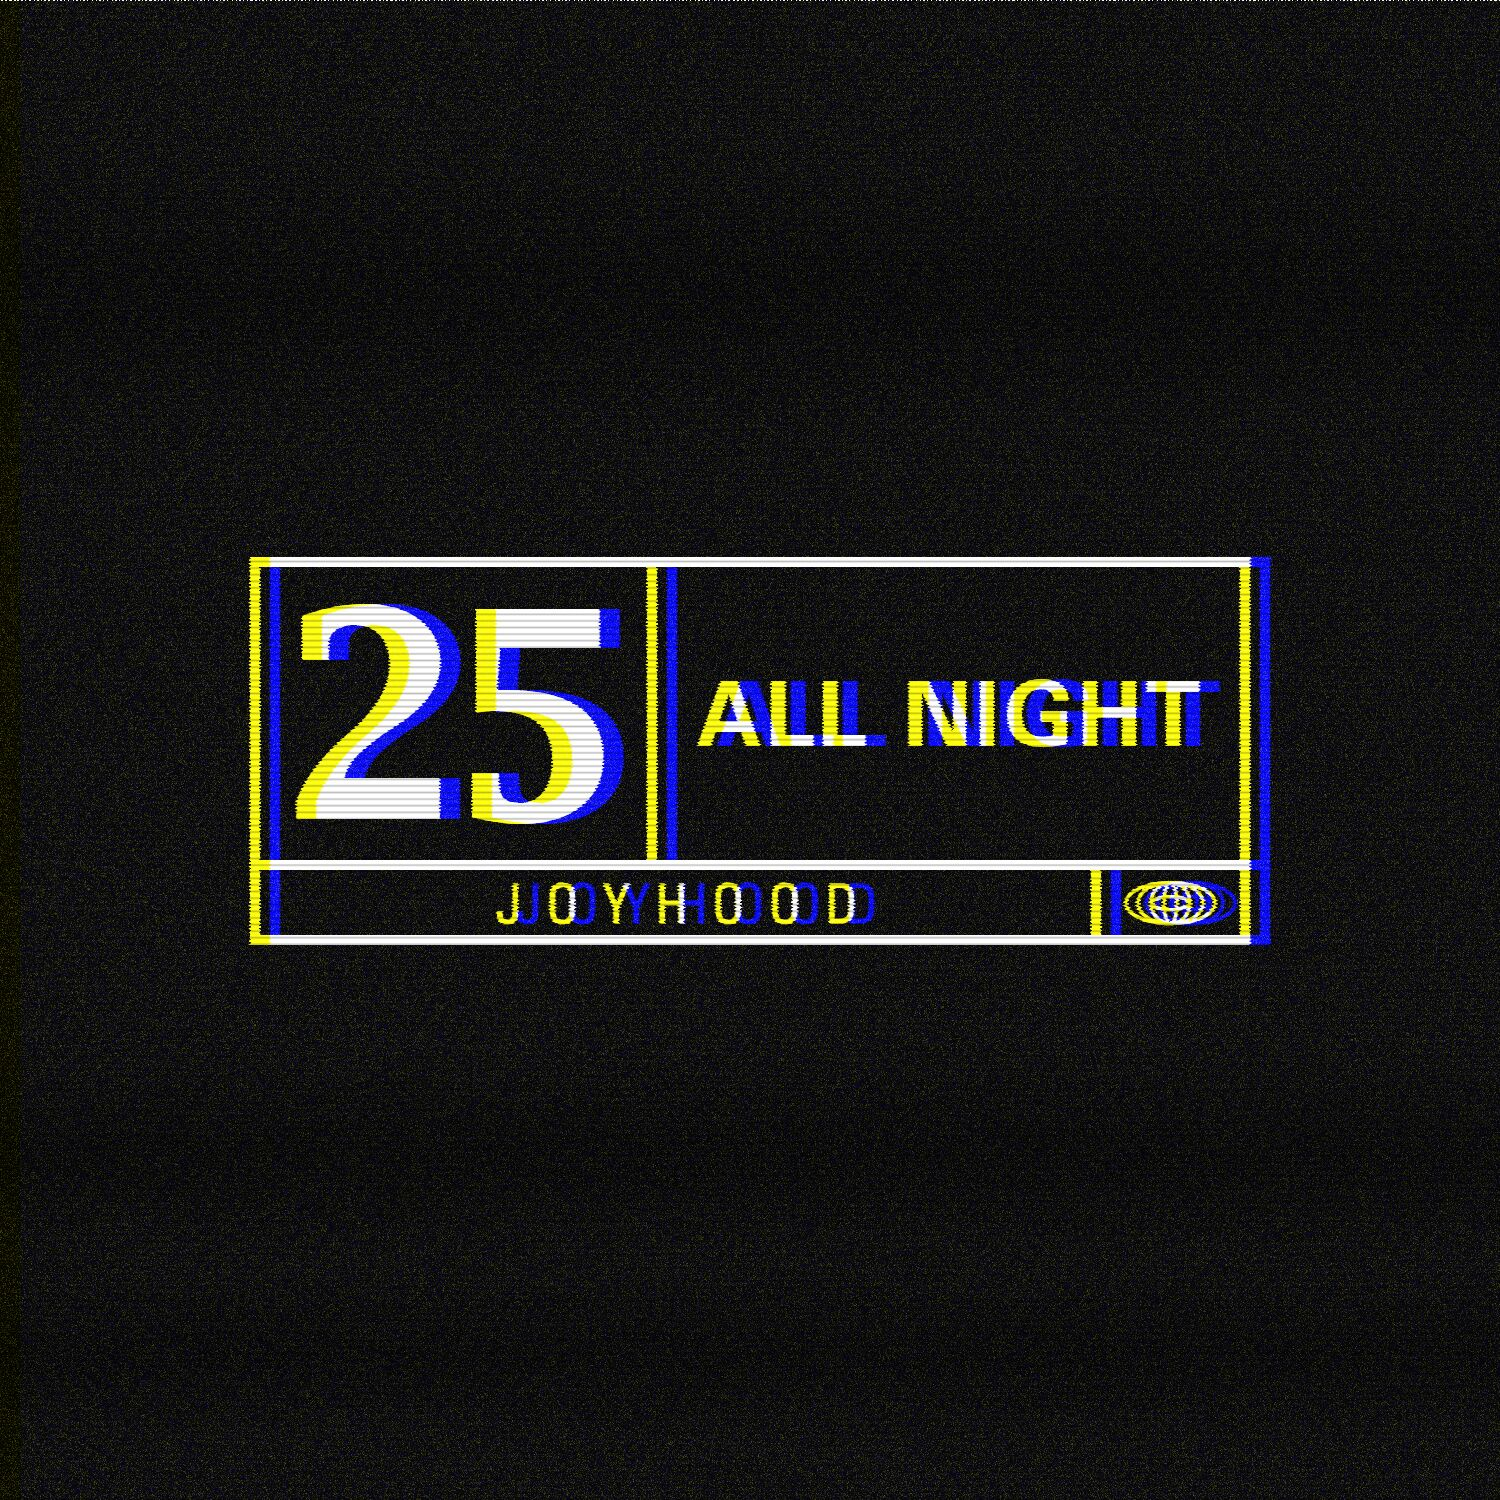 25 All Night